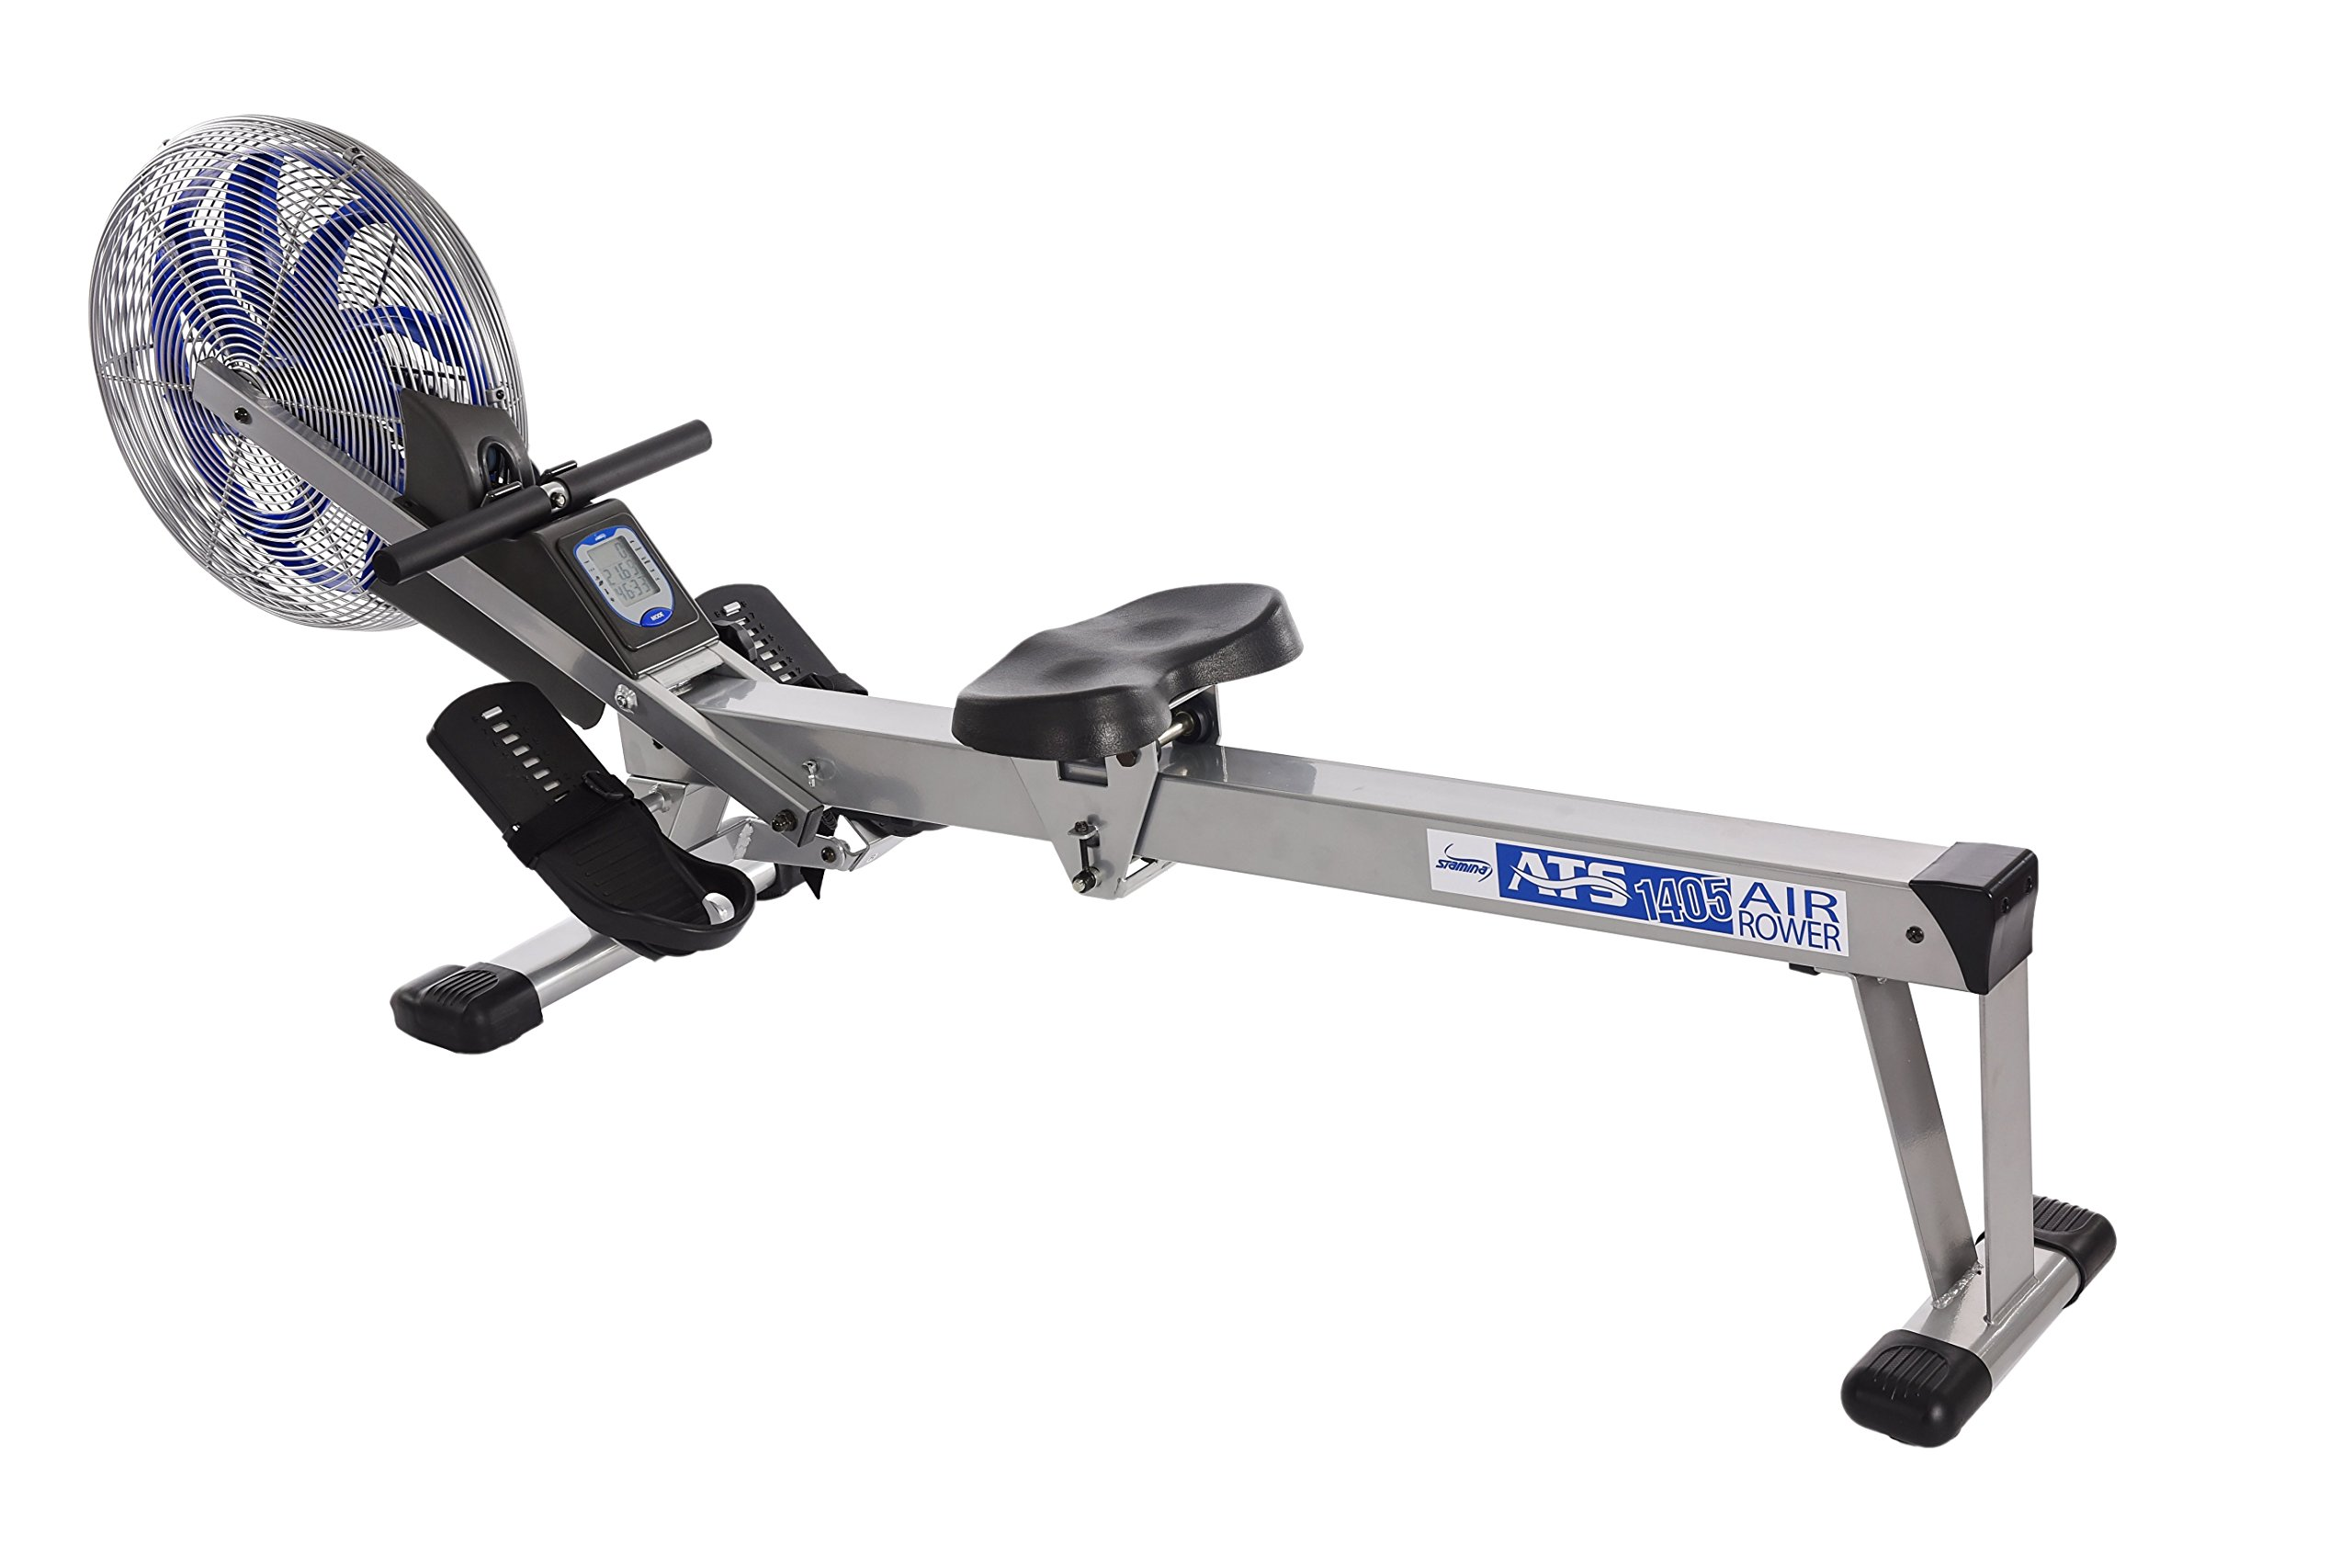 Stamina 35-1405 ATS Air Rower 1405 Rowing Machine, Air Resistance, LCD Fitness Monitor, Folding and Built-in Wheels, Chrome/Blue/Black by Stamina (Image #1)